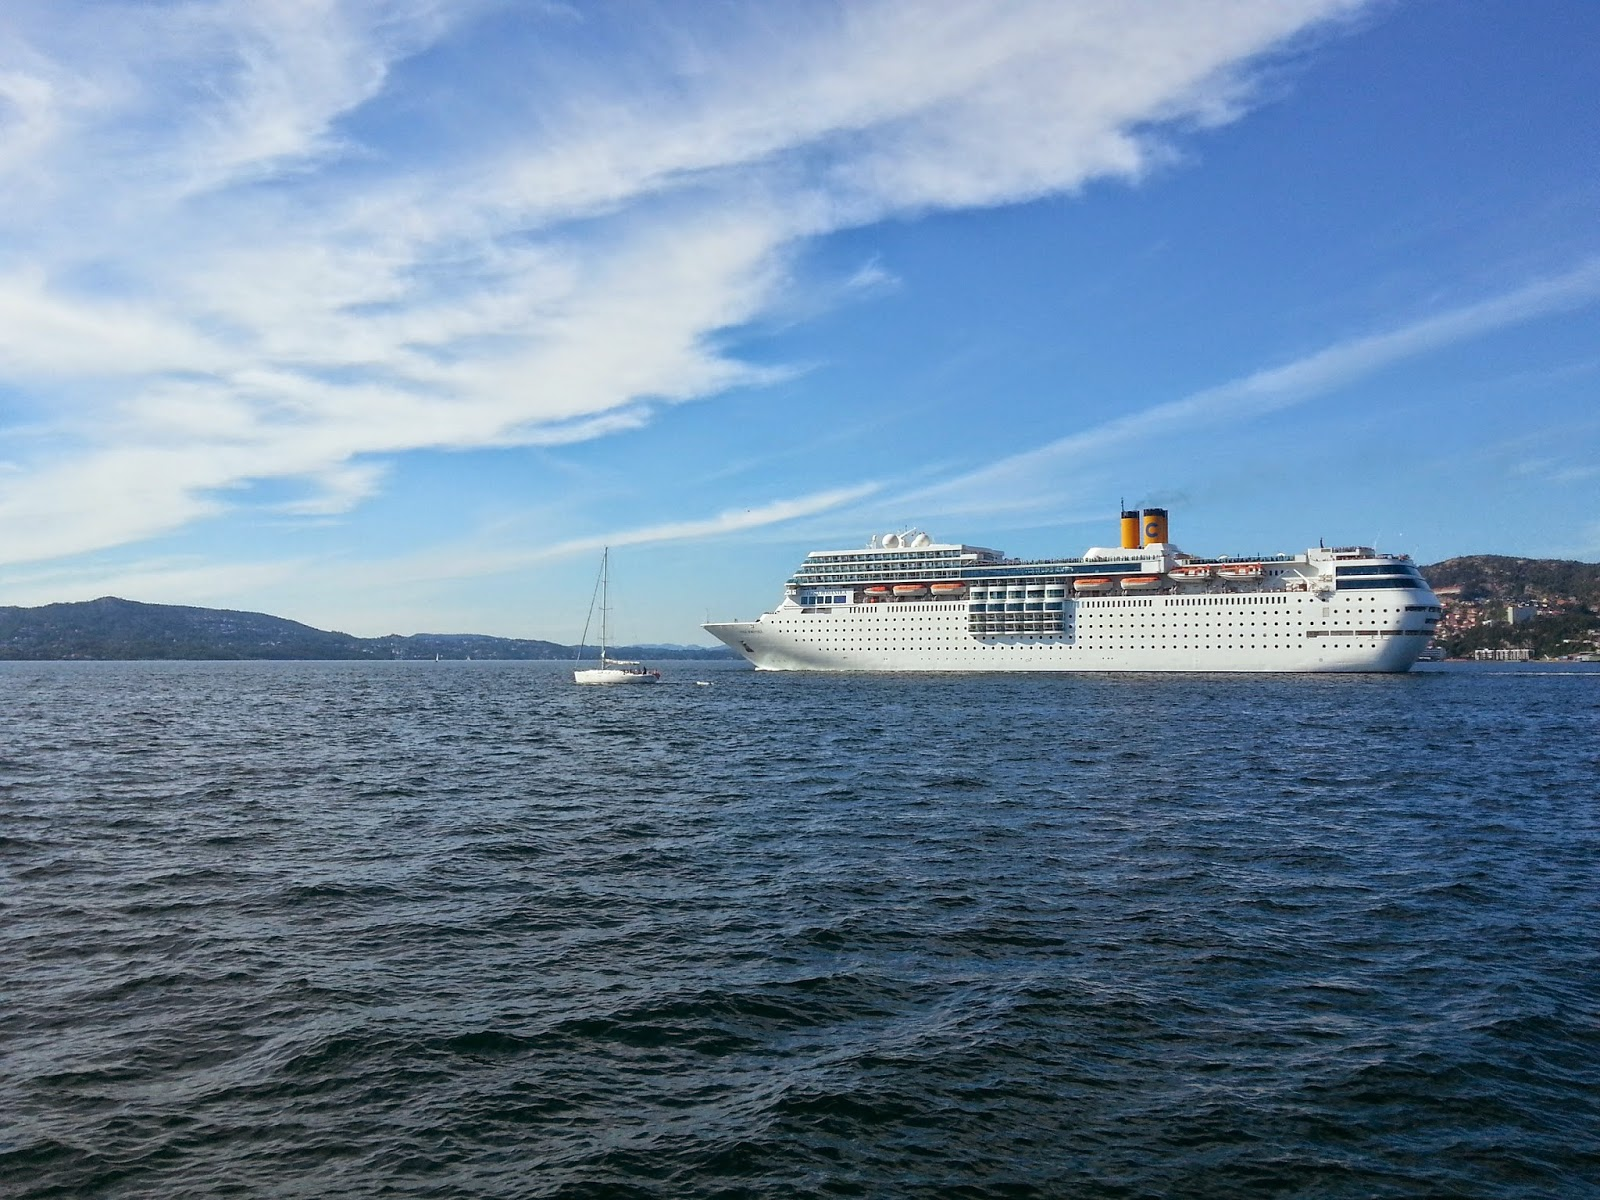 Cruise Ship Costa neoRomantica in Bergen